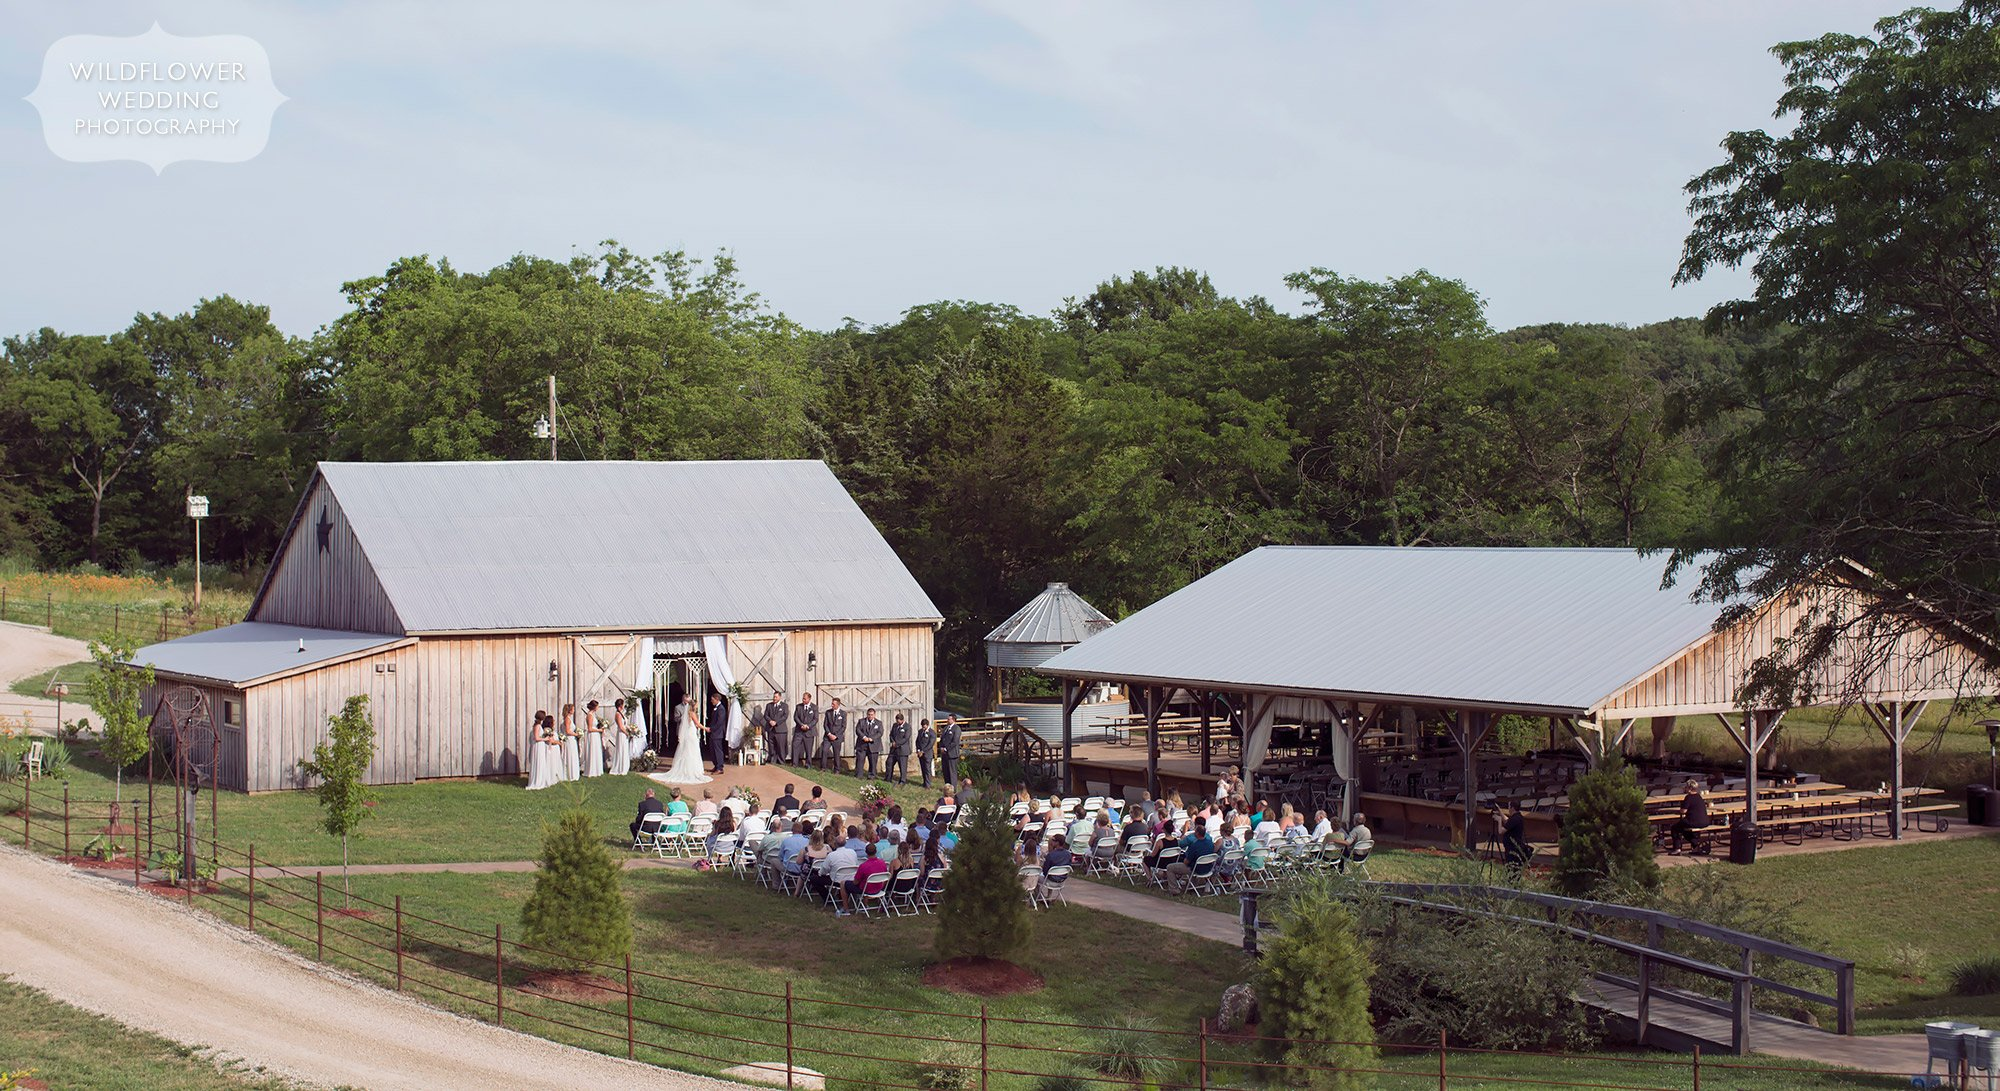 View of the outdoor ceremony in front of the reception barn at Kempker's Back 40, a rustic wedding venue in Westphalia.